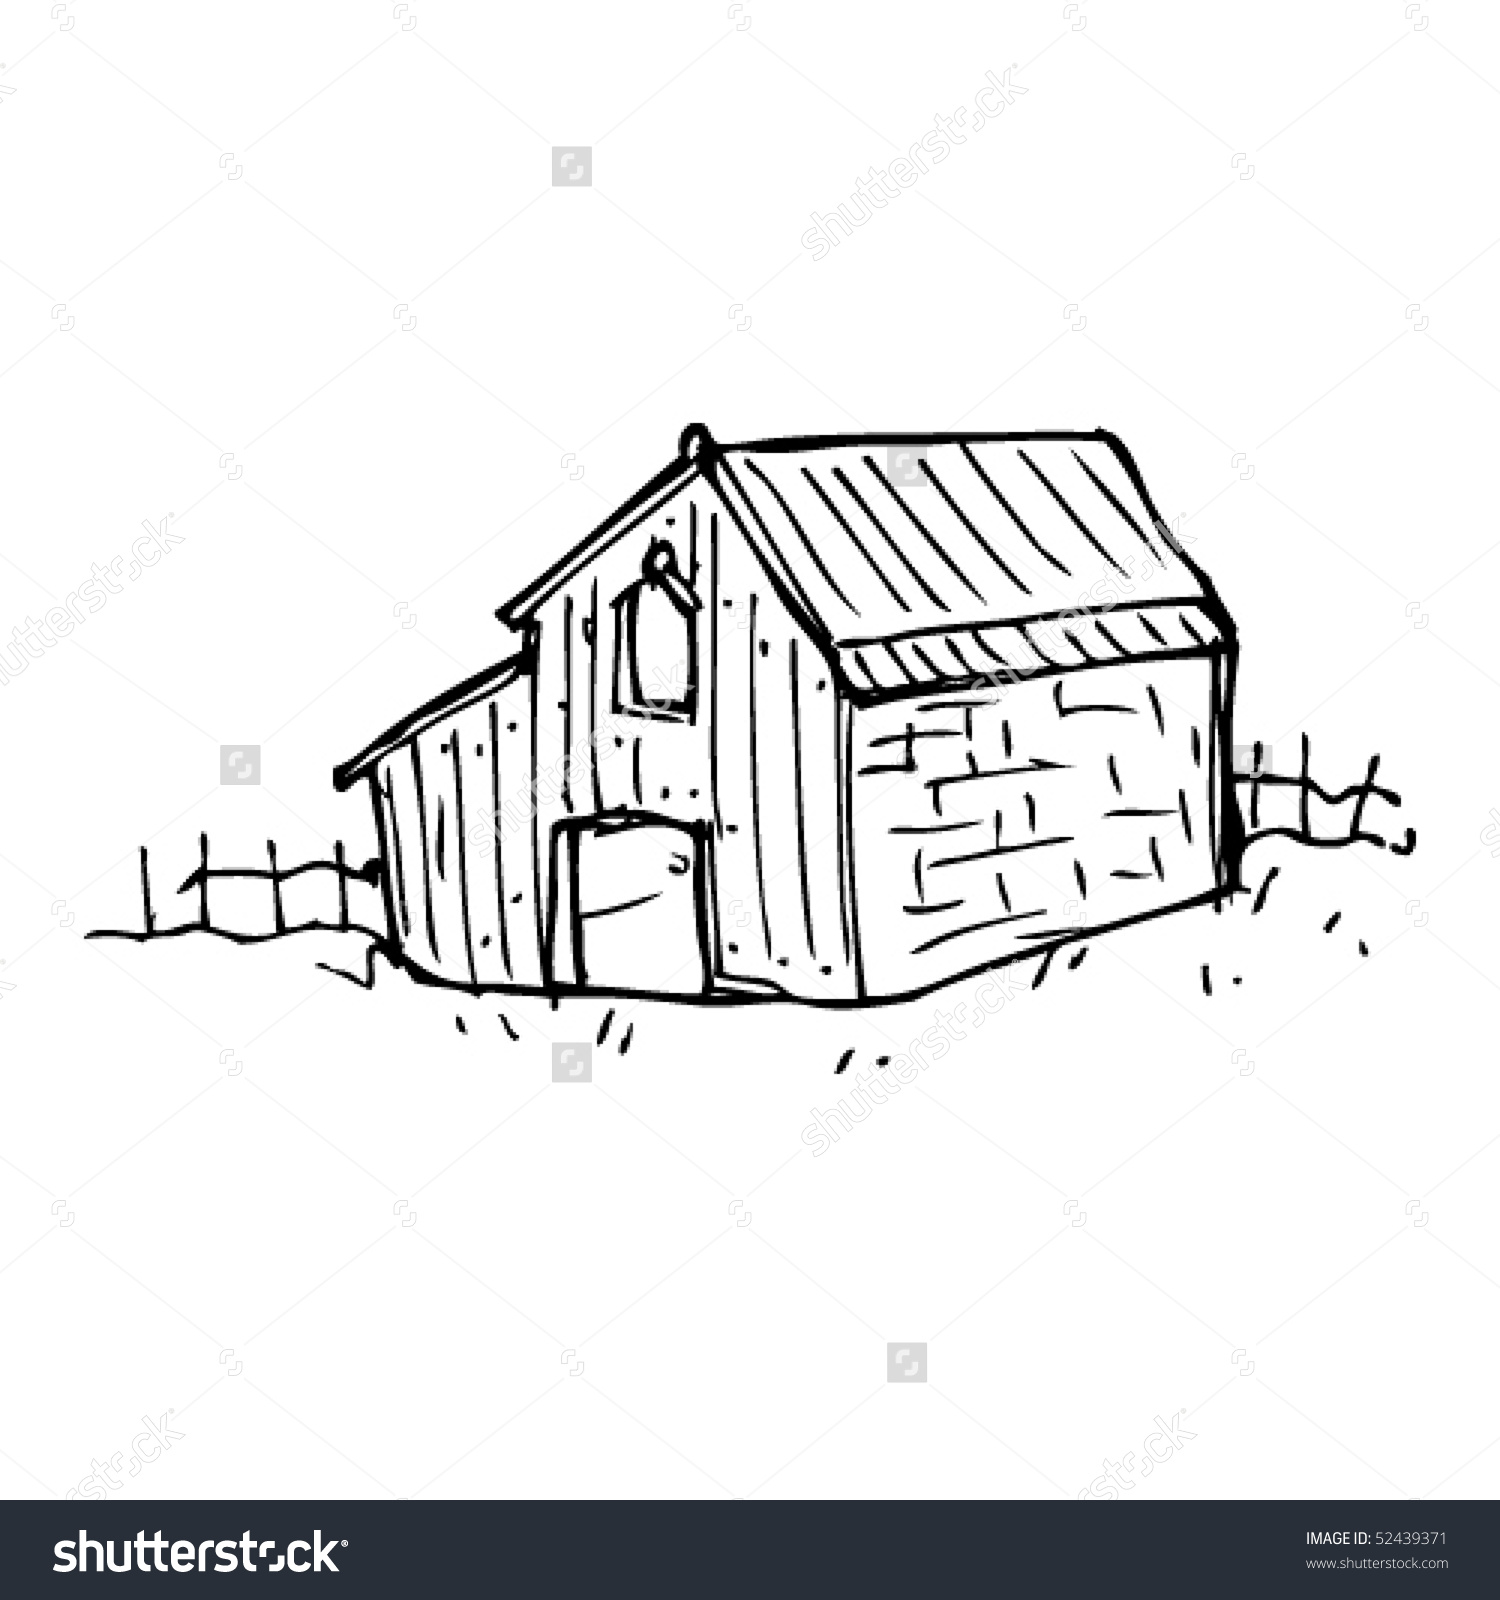 cool old clipground. Barn clipart rustic barn